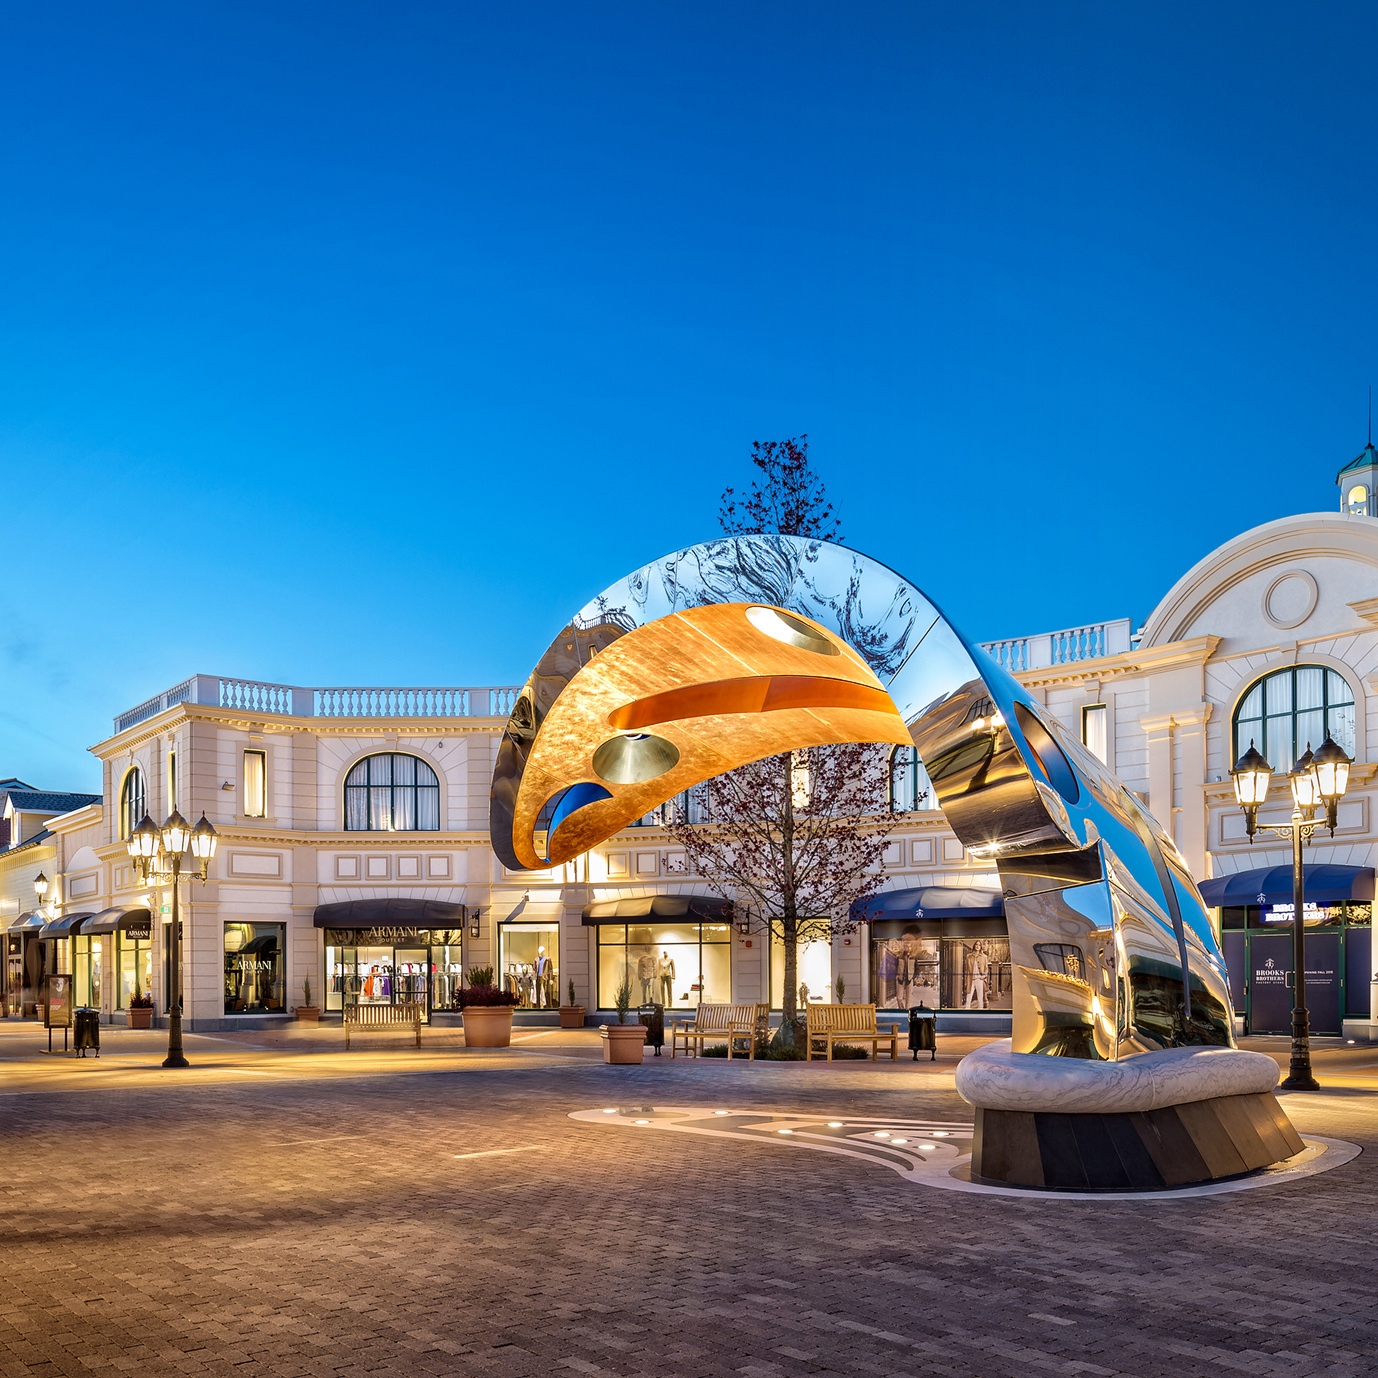 Designer Outlet Center, Vancouver